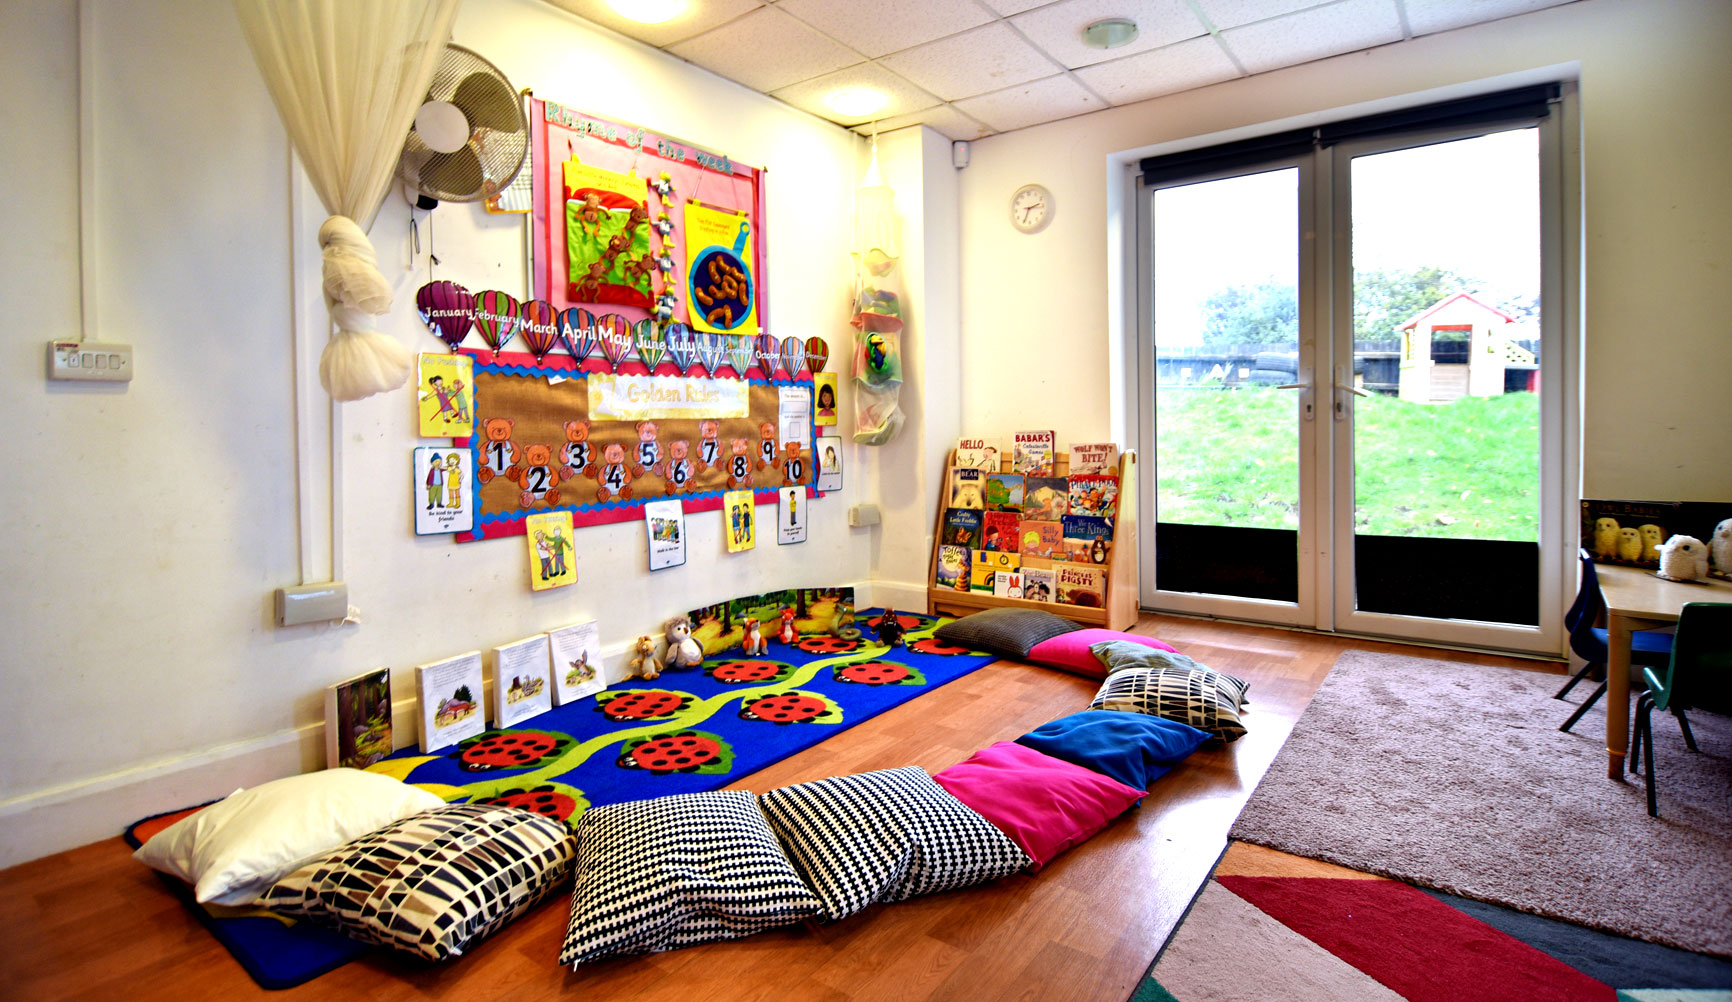 Take a guided tour with us and appraise the nursery & pre-school for suitability for your child.